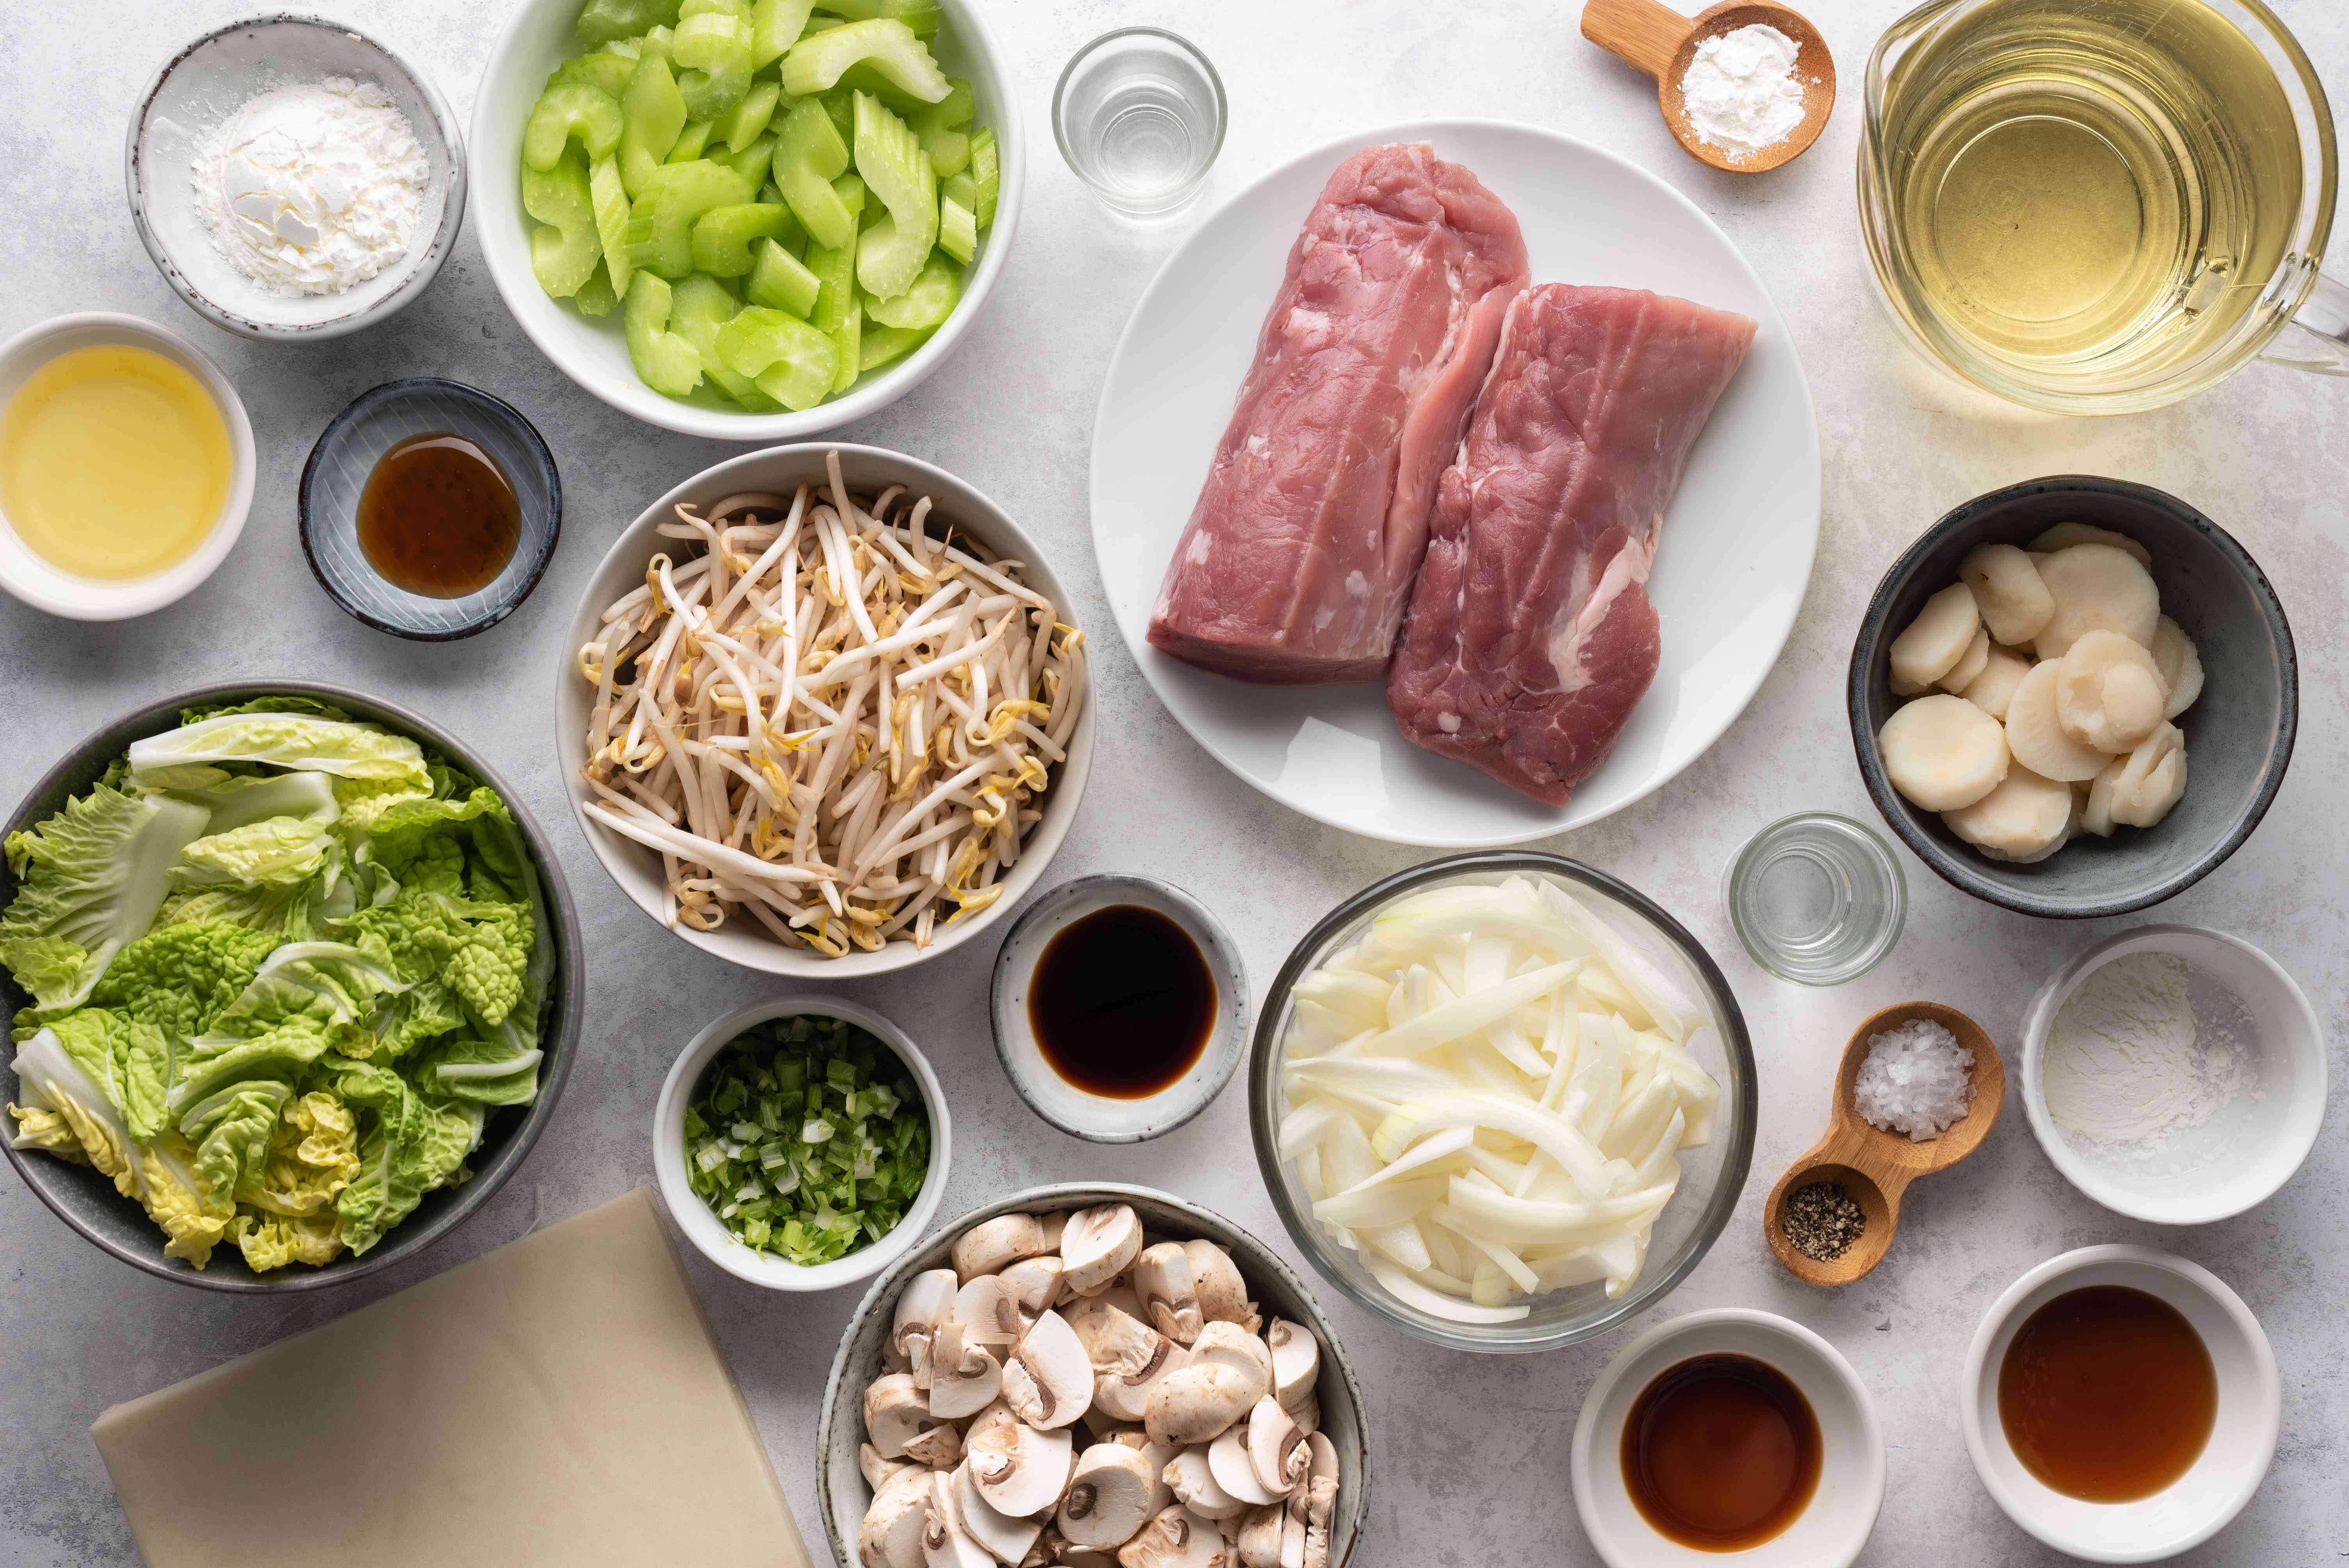 Cooking Chinese Egg Rolls ingredients